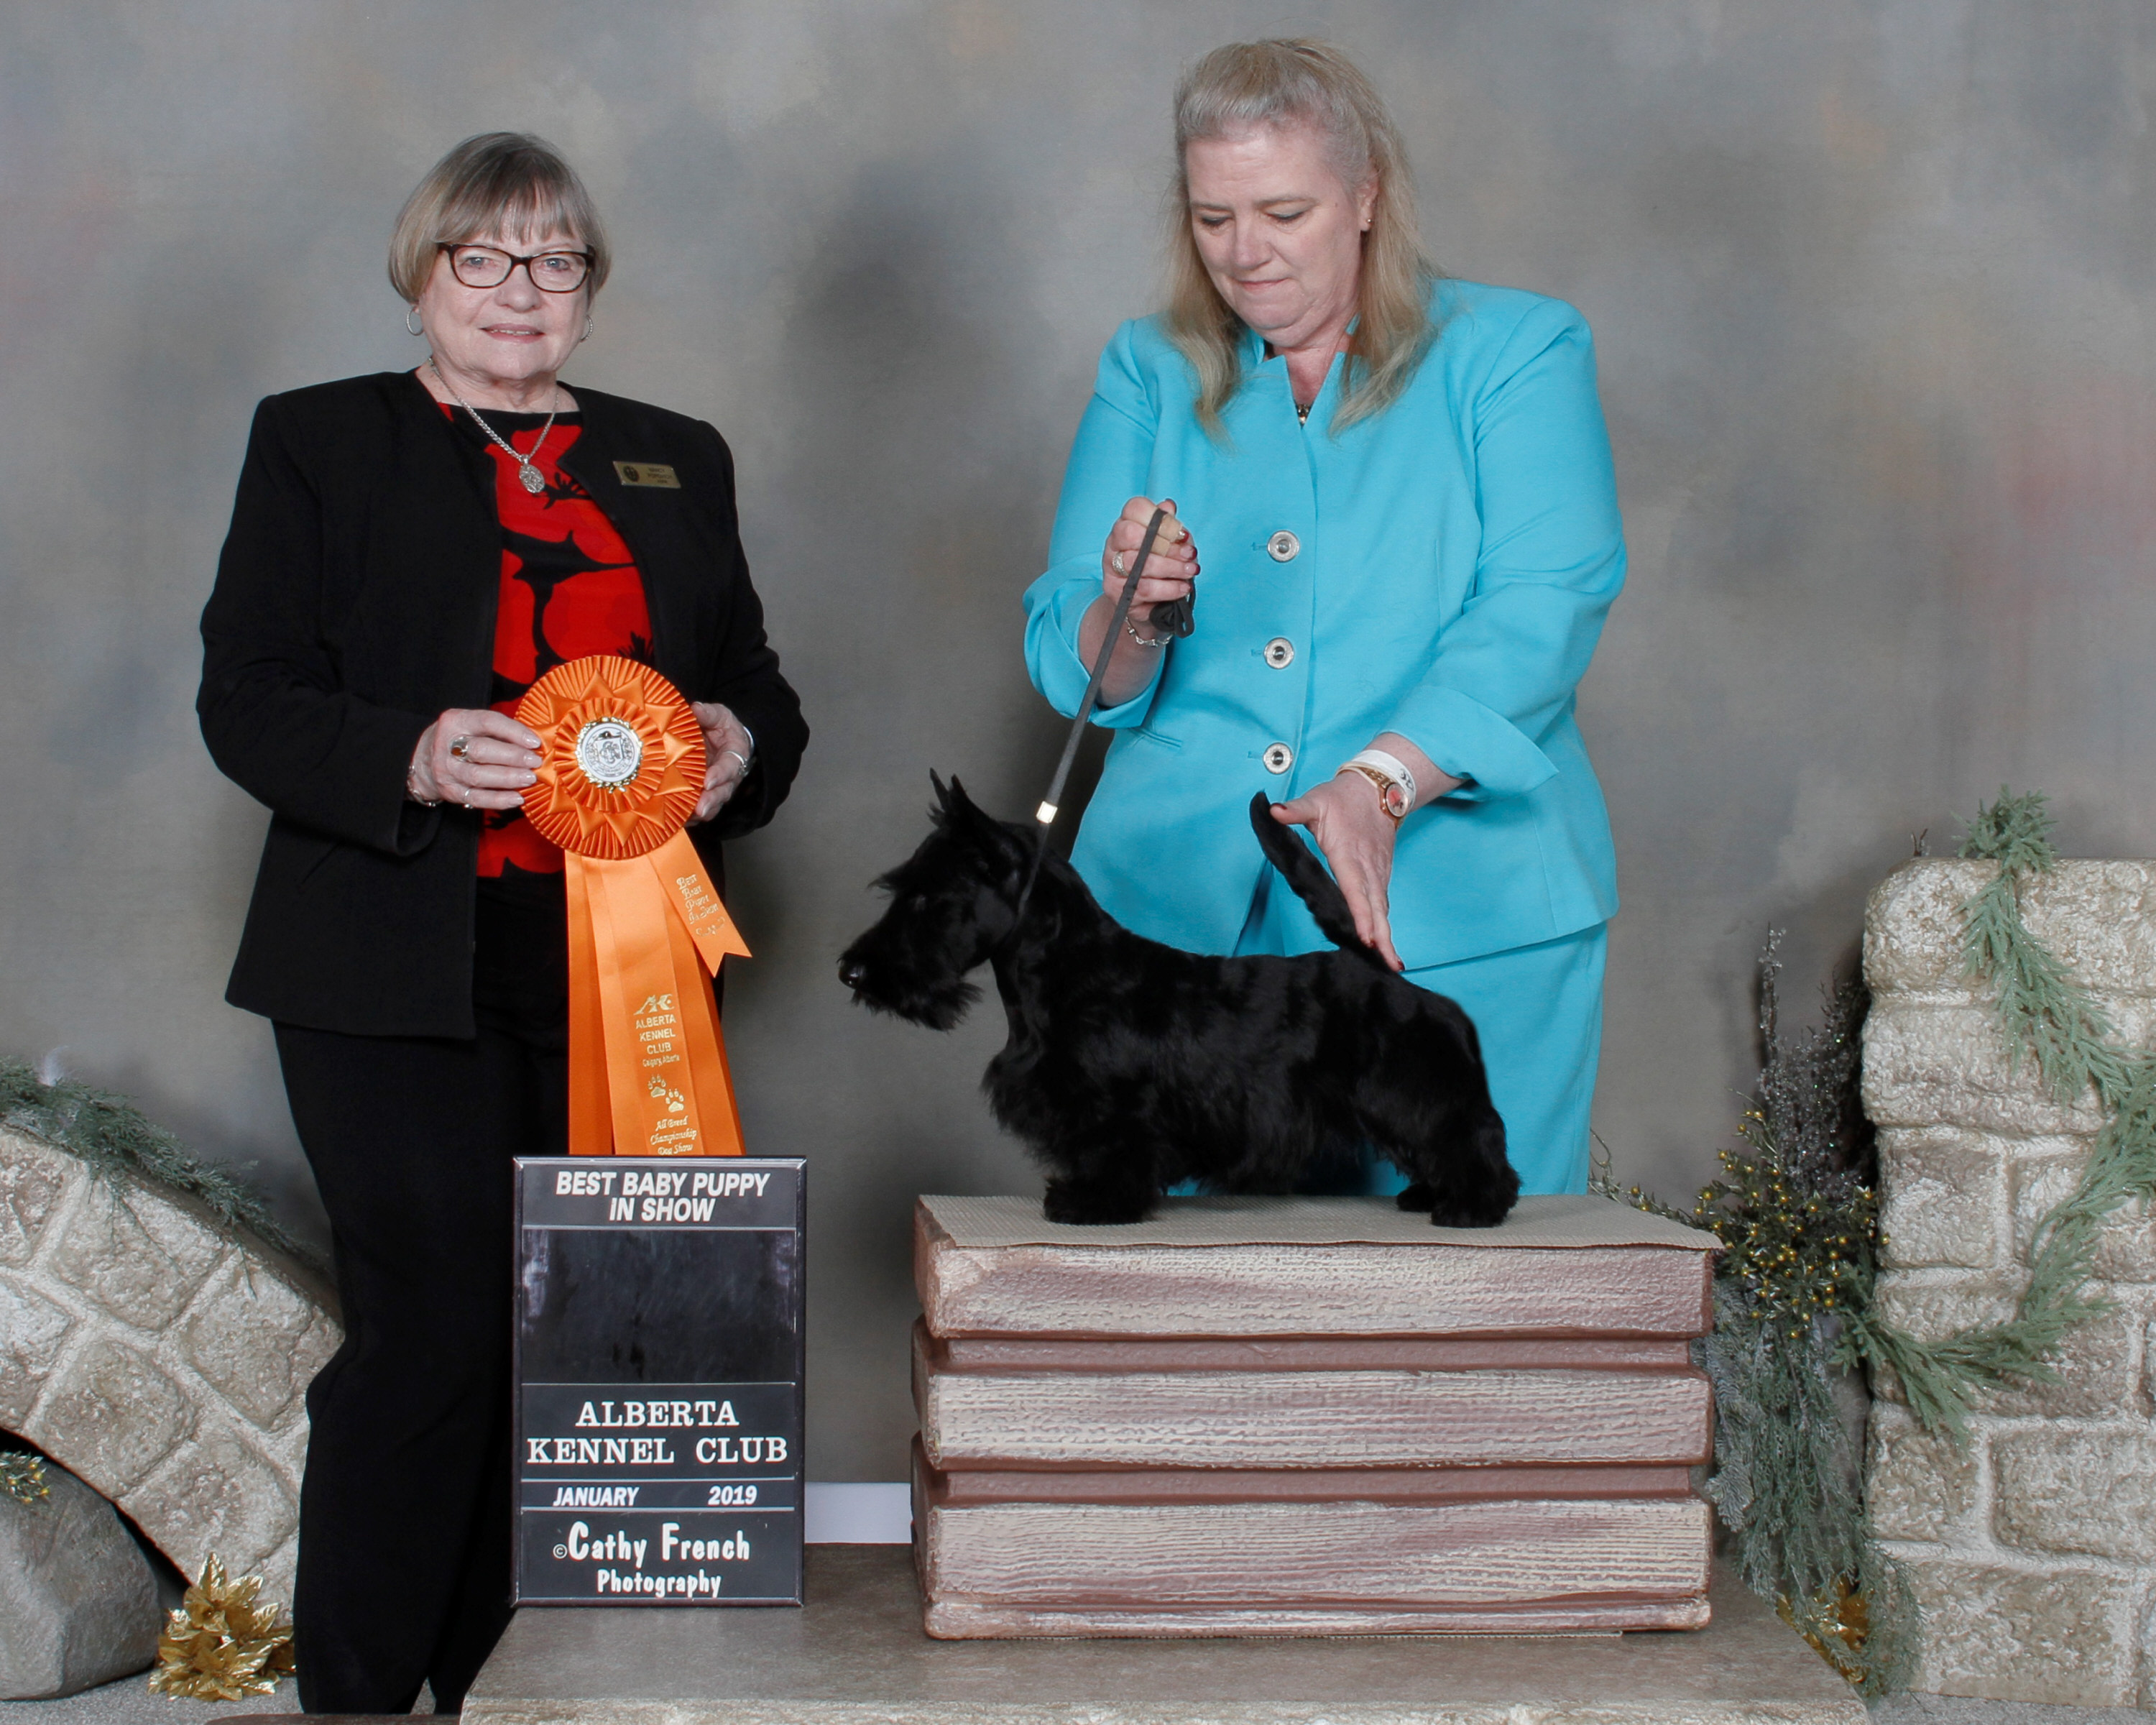 Scottish Terrier Barrister Sine Qua Non, at 4 months, Best Puppy in first show